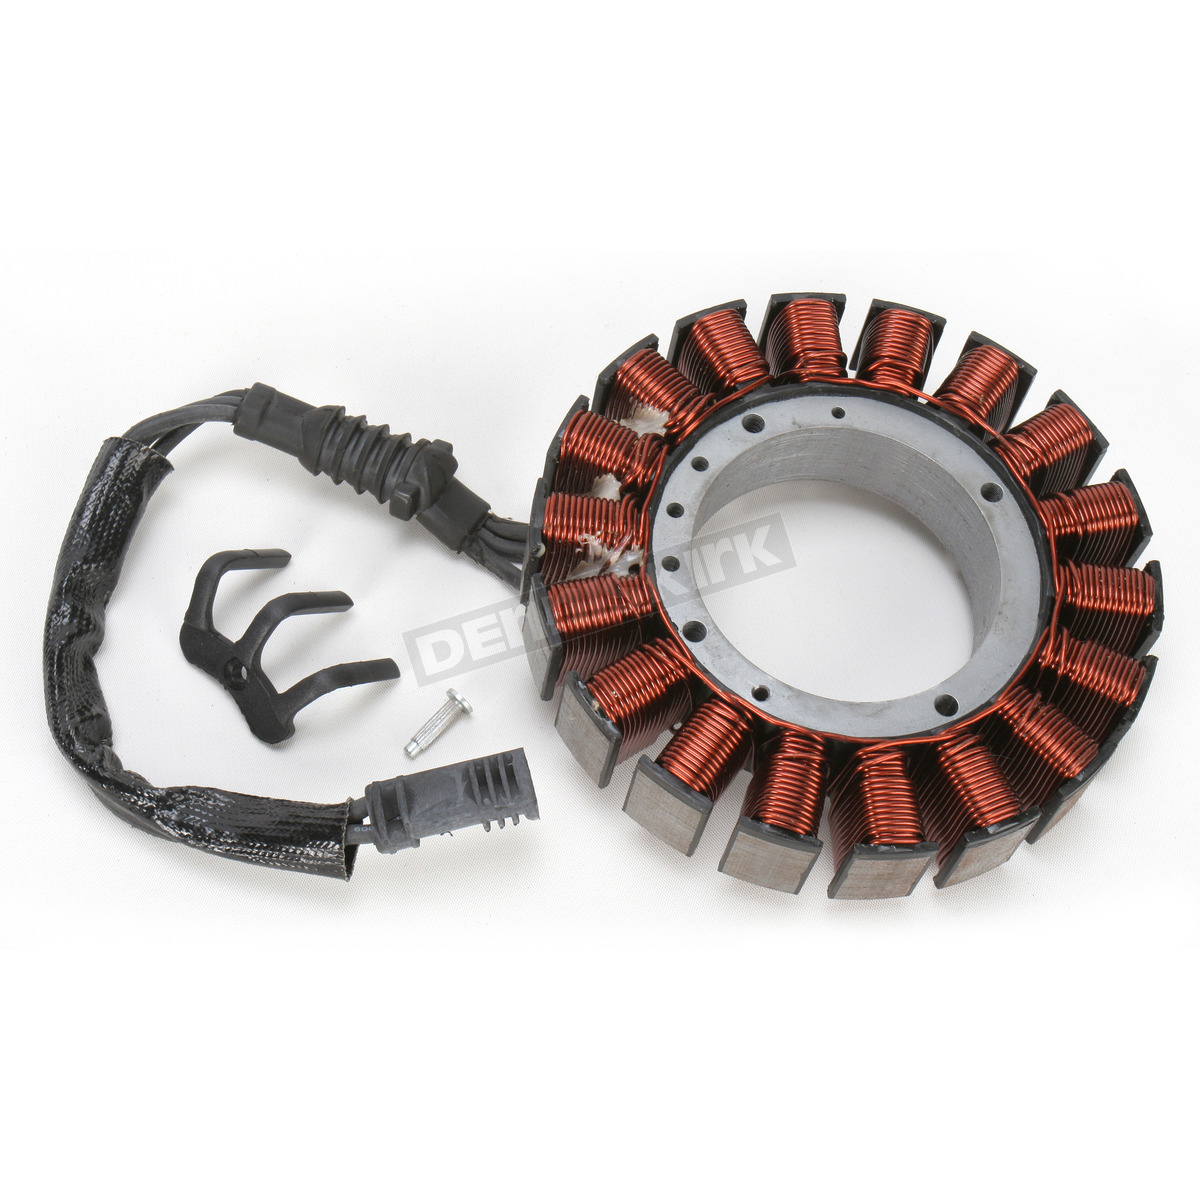 Alternator Stator-Uncoated - 2112-0330 on harley isolator wiring, harley switch wiring, harley coil wiring, harley regulator wiring, harley relay wiring, harley tachometer wiring, harley wiring harness, harley wiring diagram, harley ignition wiring, harley generator wiring, harley magneto wiring, harley solenoid wiring, harley engine wiring, harley starter wiring, harley circuit breaker wiring, harley speedometer wiring, harley handlebar wiring,